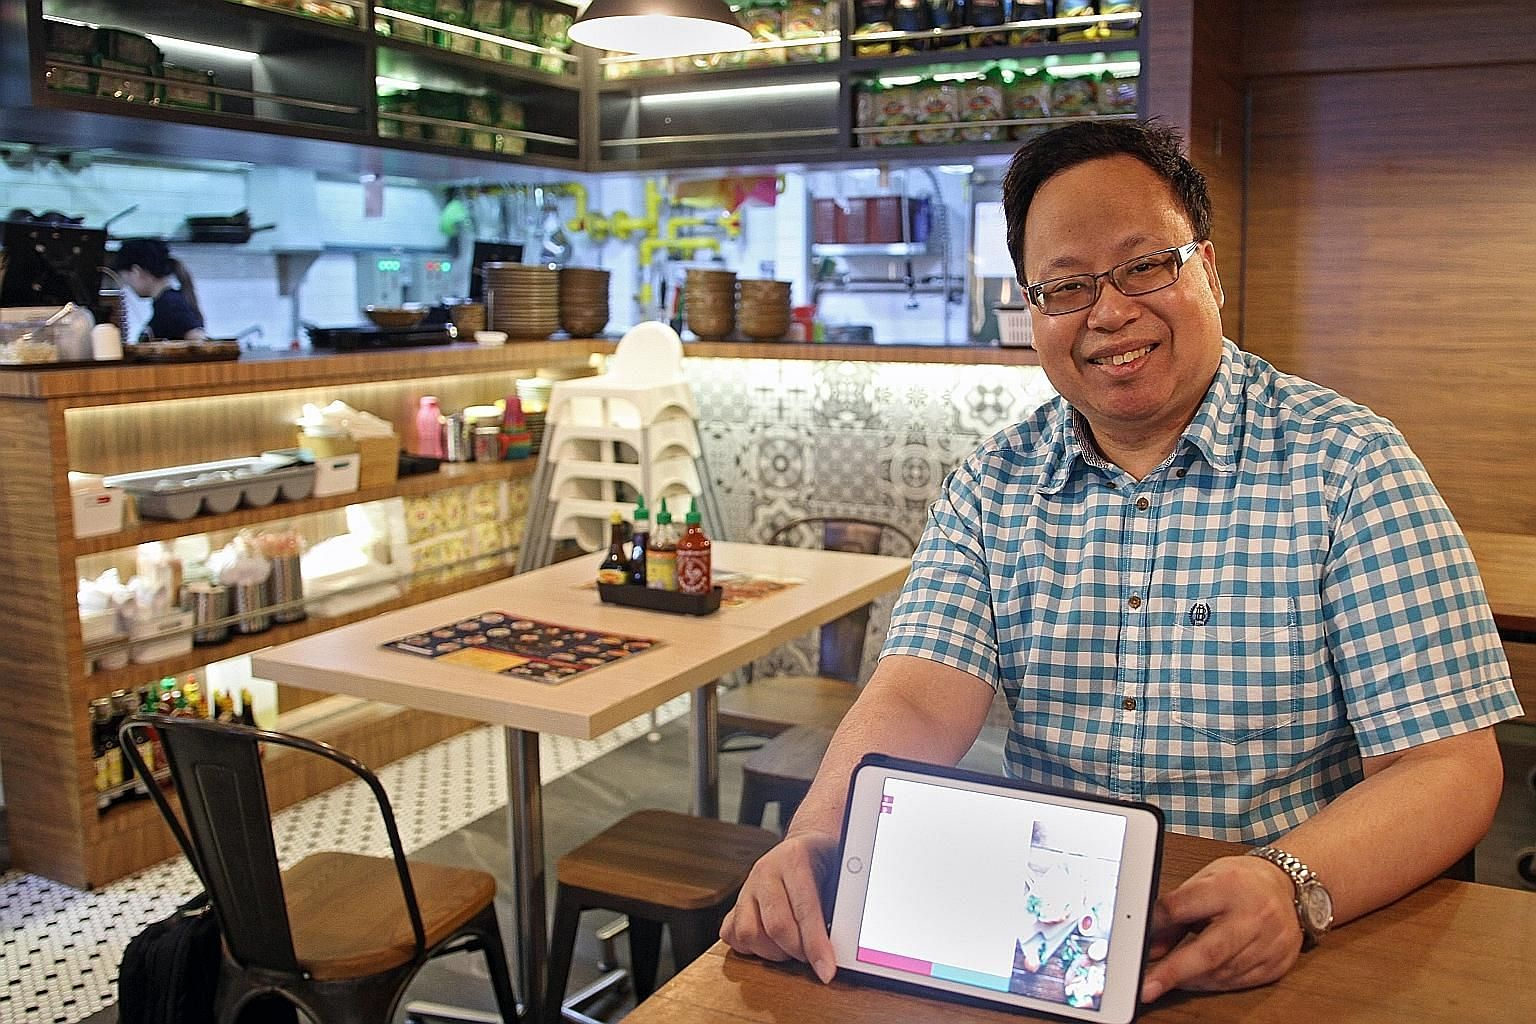 Dr Koh Wee Lit sees more ways in which Habitat Blue's software can help restaurateurs manage their businesses. Currently, the Orca software consists of specialised apps for workers in different roles in a restaurant that help them perform their jobs